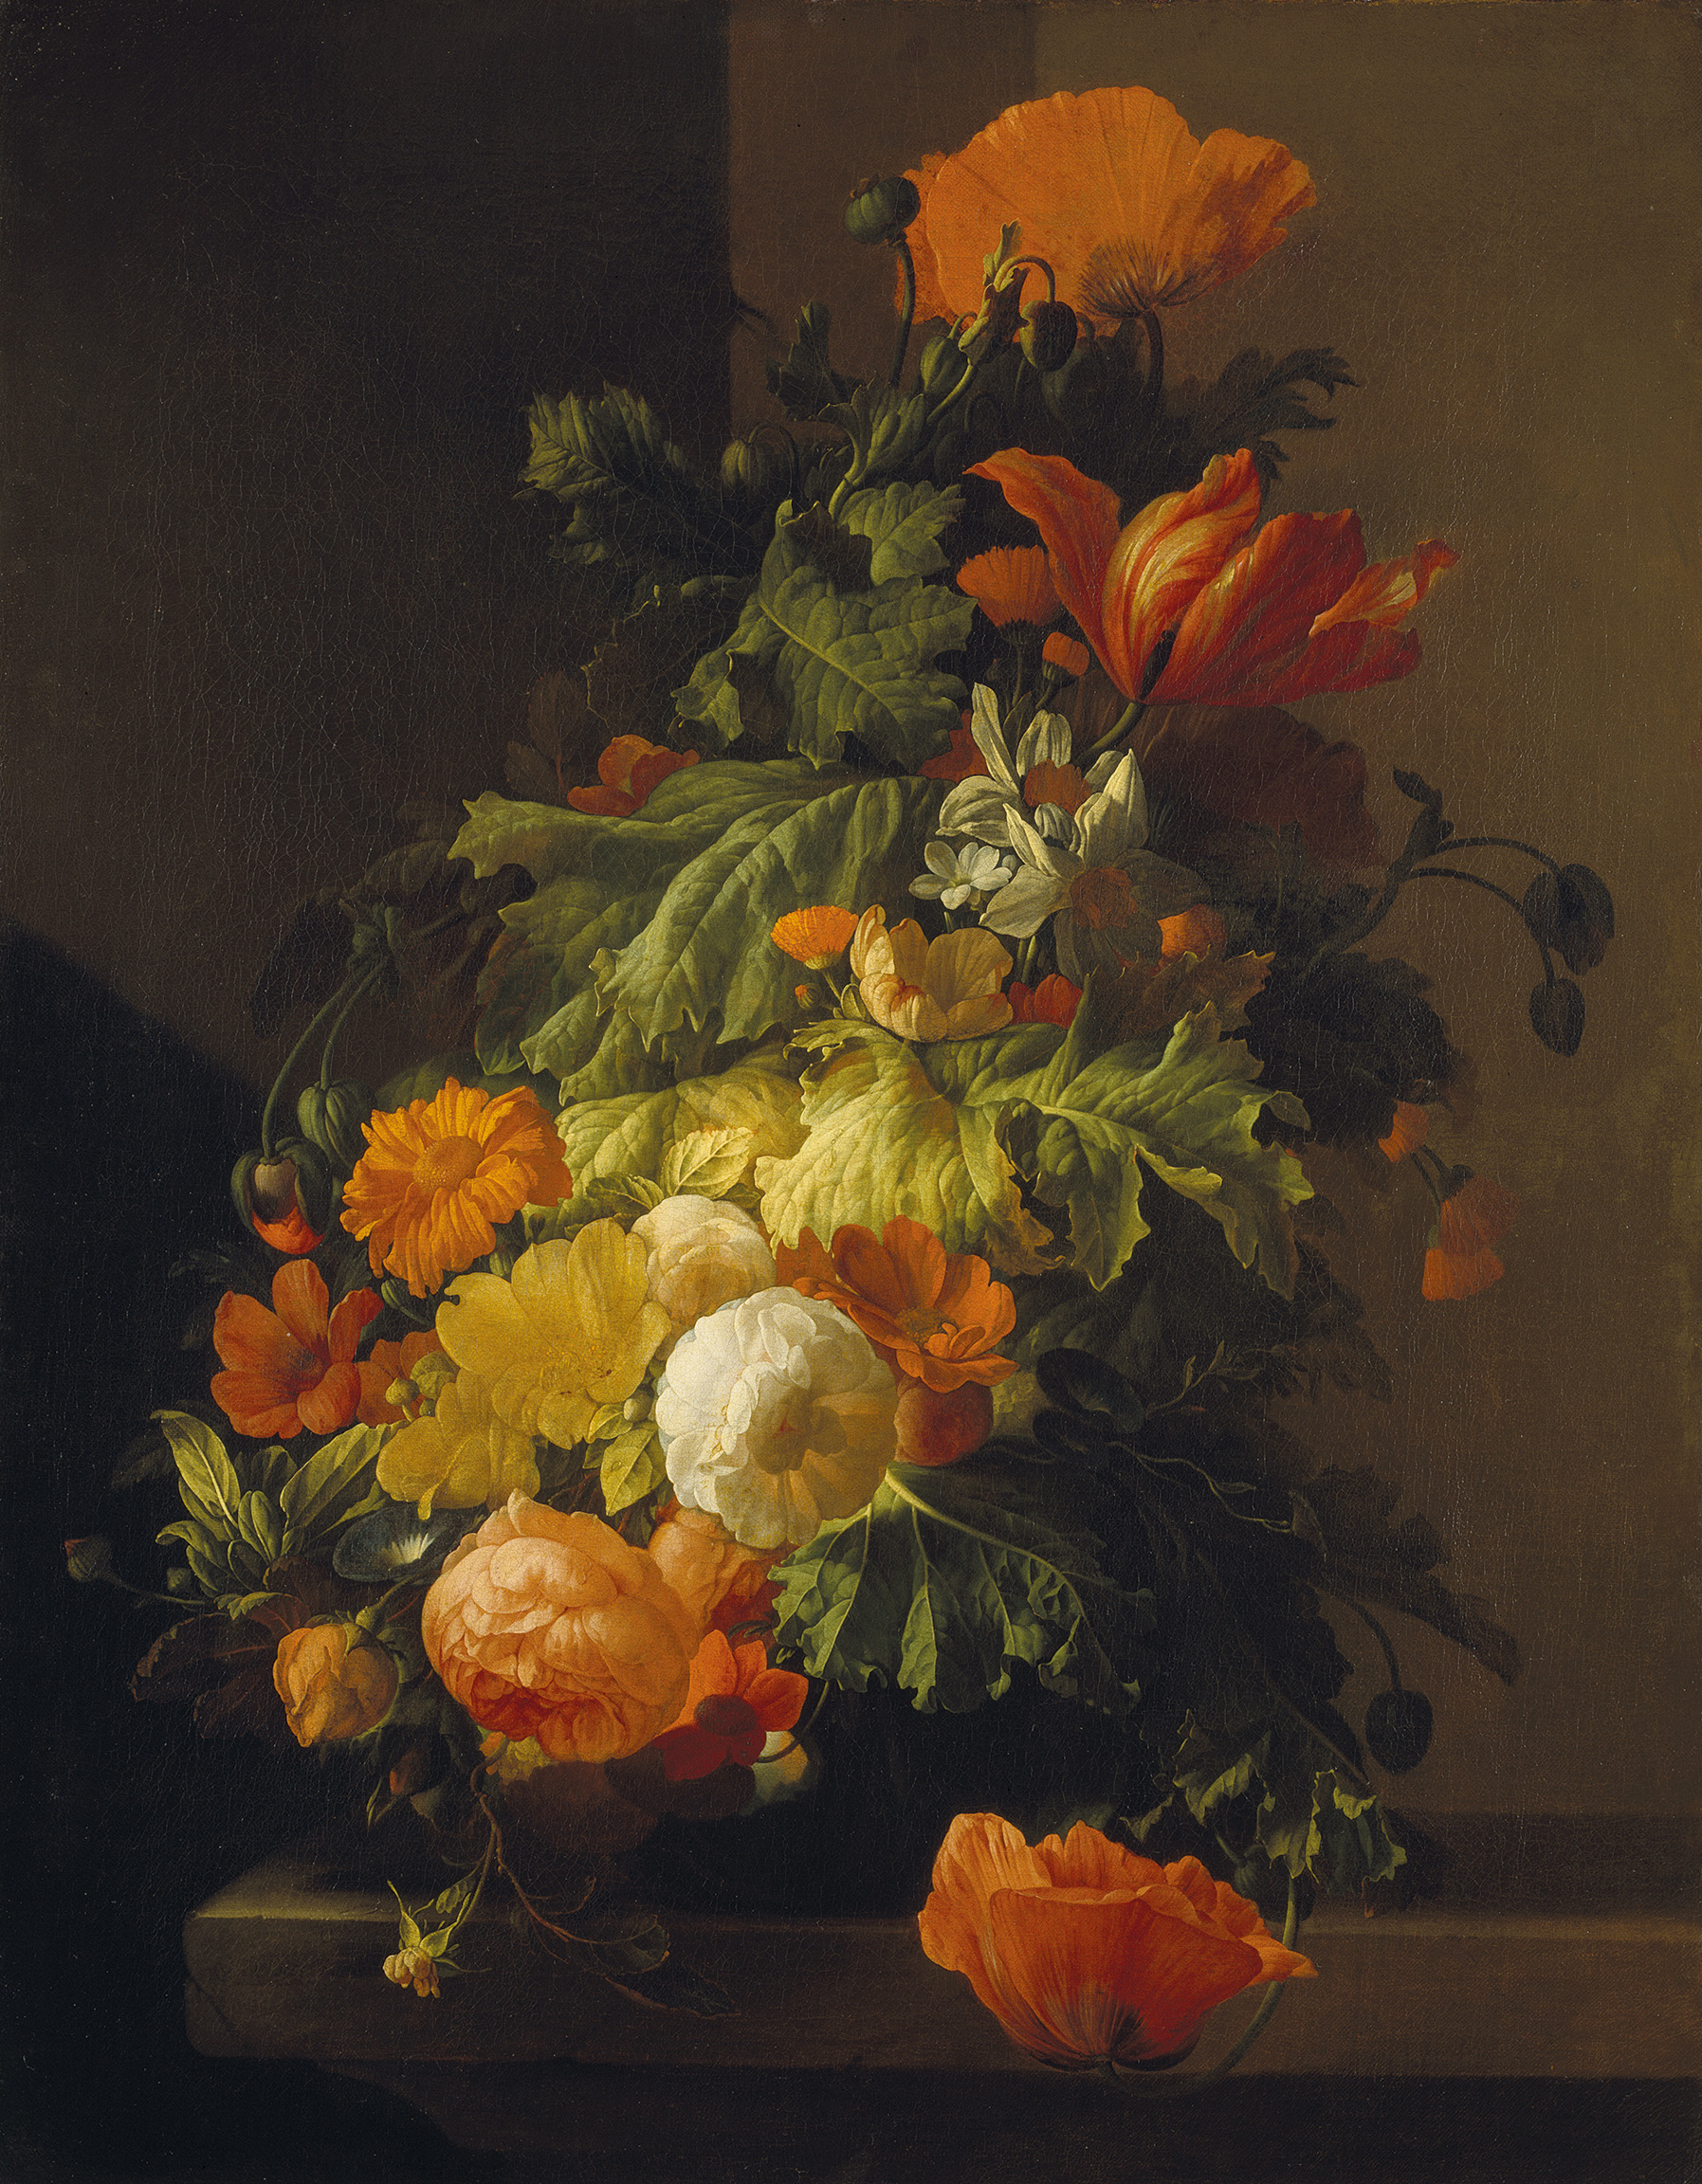 A Vase of Flowers - Poppies and Peonies